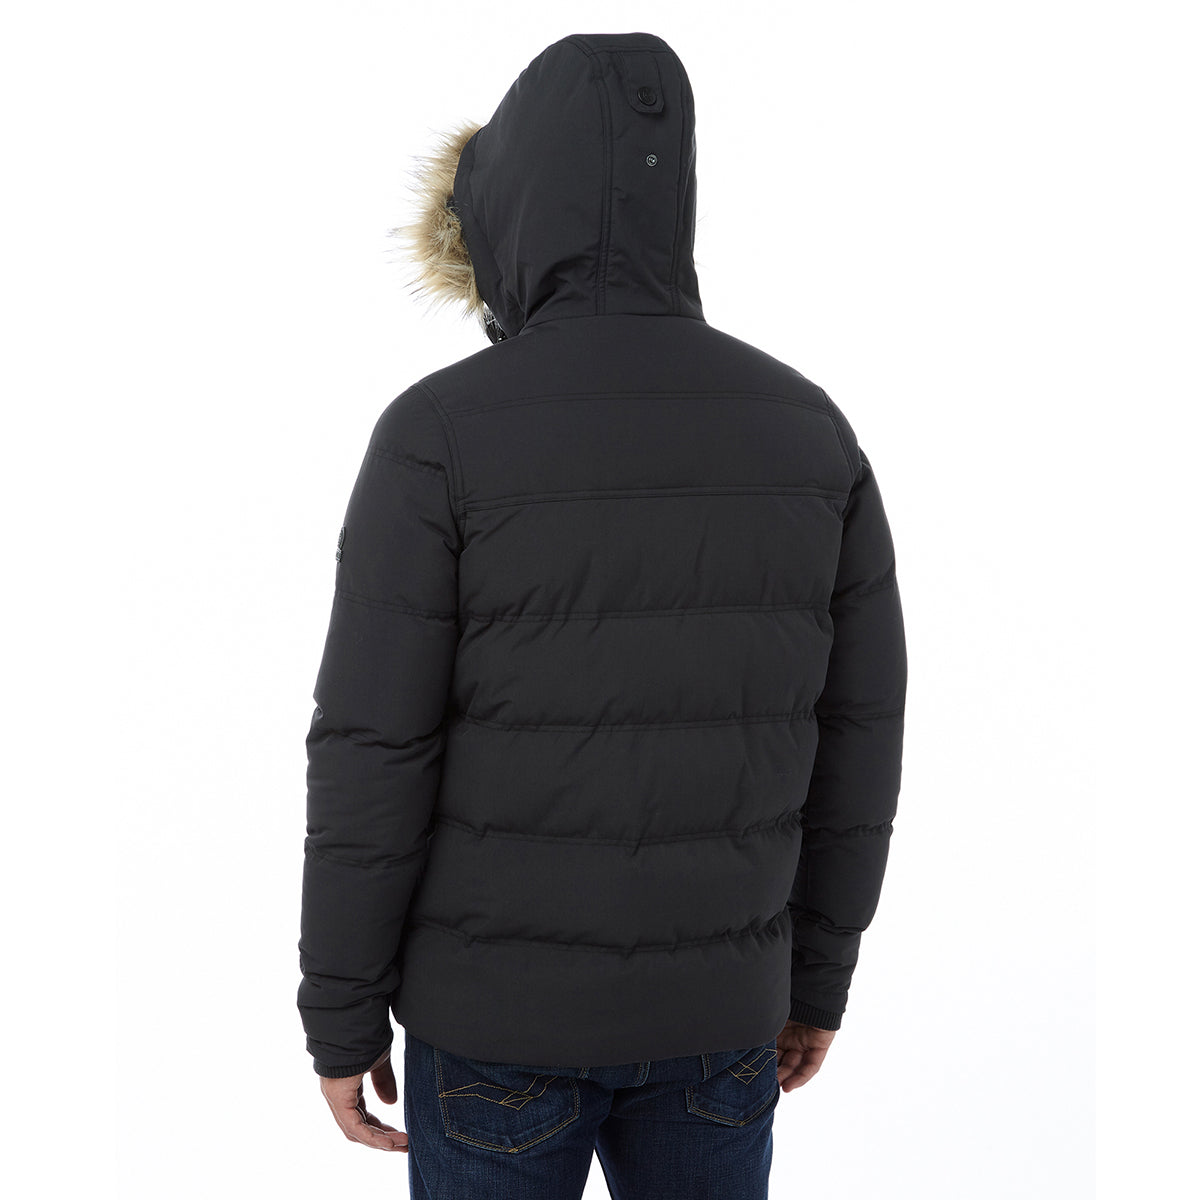 Ryburn Mens TCZ Thermal Jacket - Black image 4